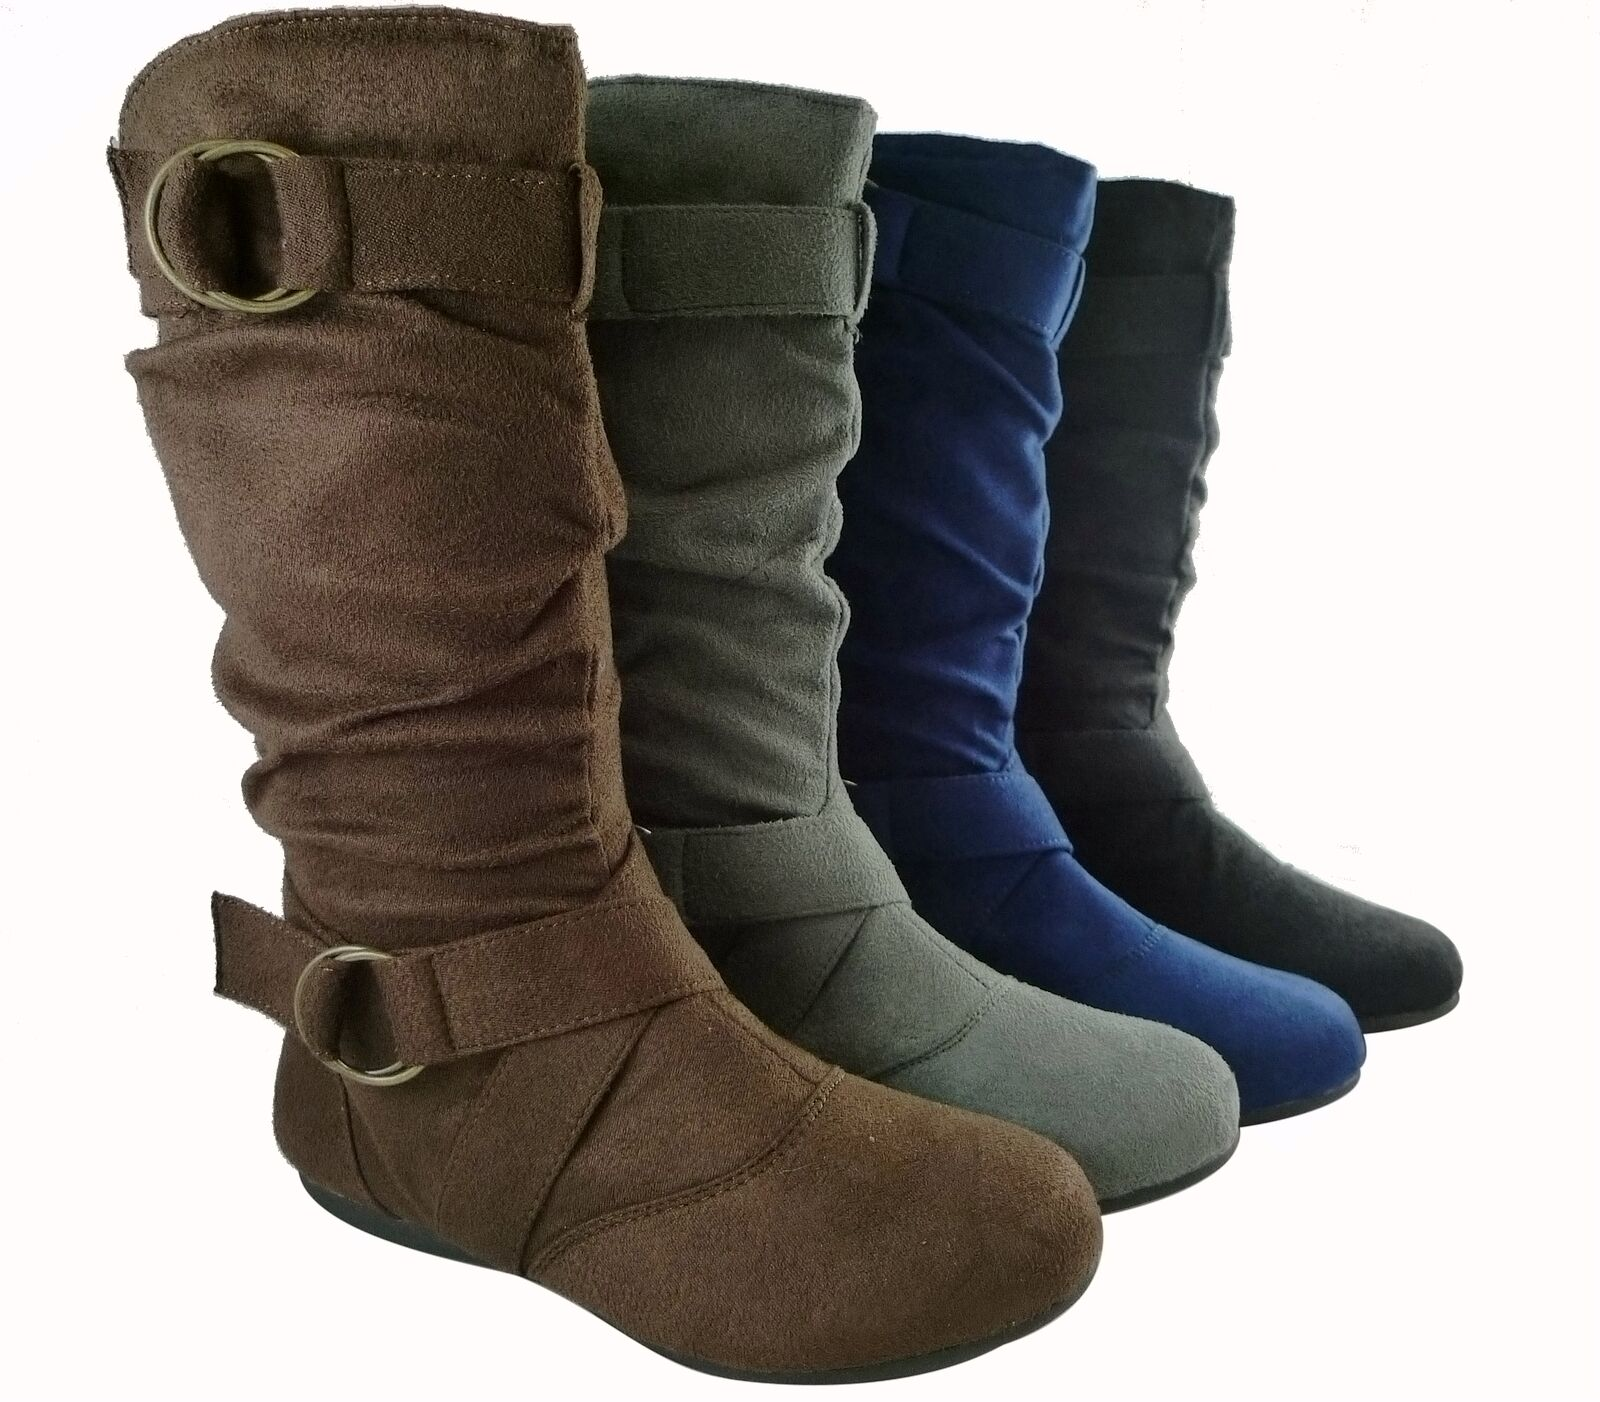 boots mid calf flat comfort fashion buckle disign